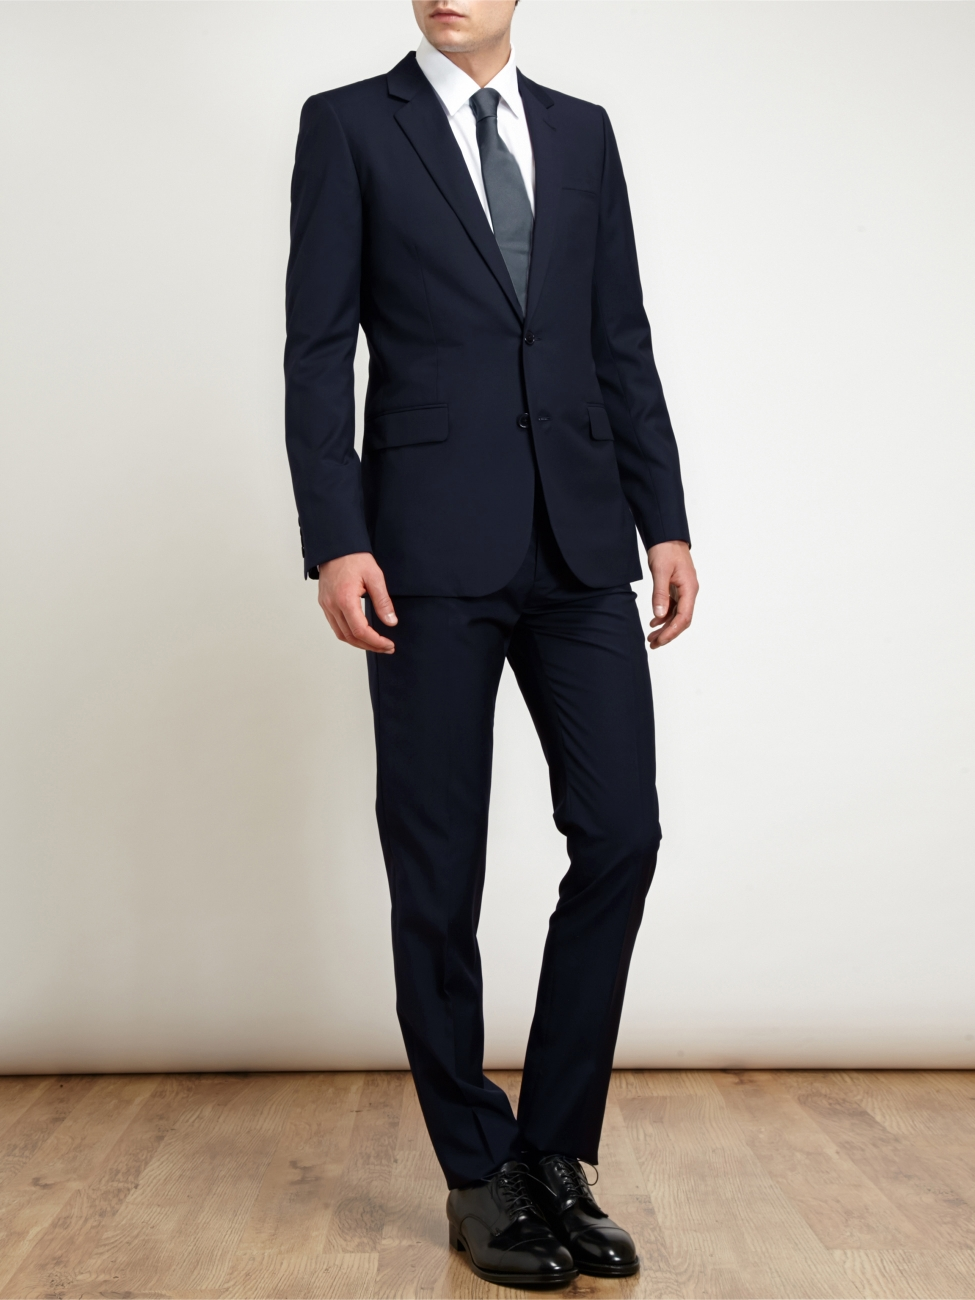 Louise Paris , YVES SAINT LAURENT Costume Homme veste et pantalon Slim fit  en laine bleu nuit Px boutique 1900\u20ac Taille 46